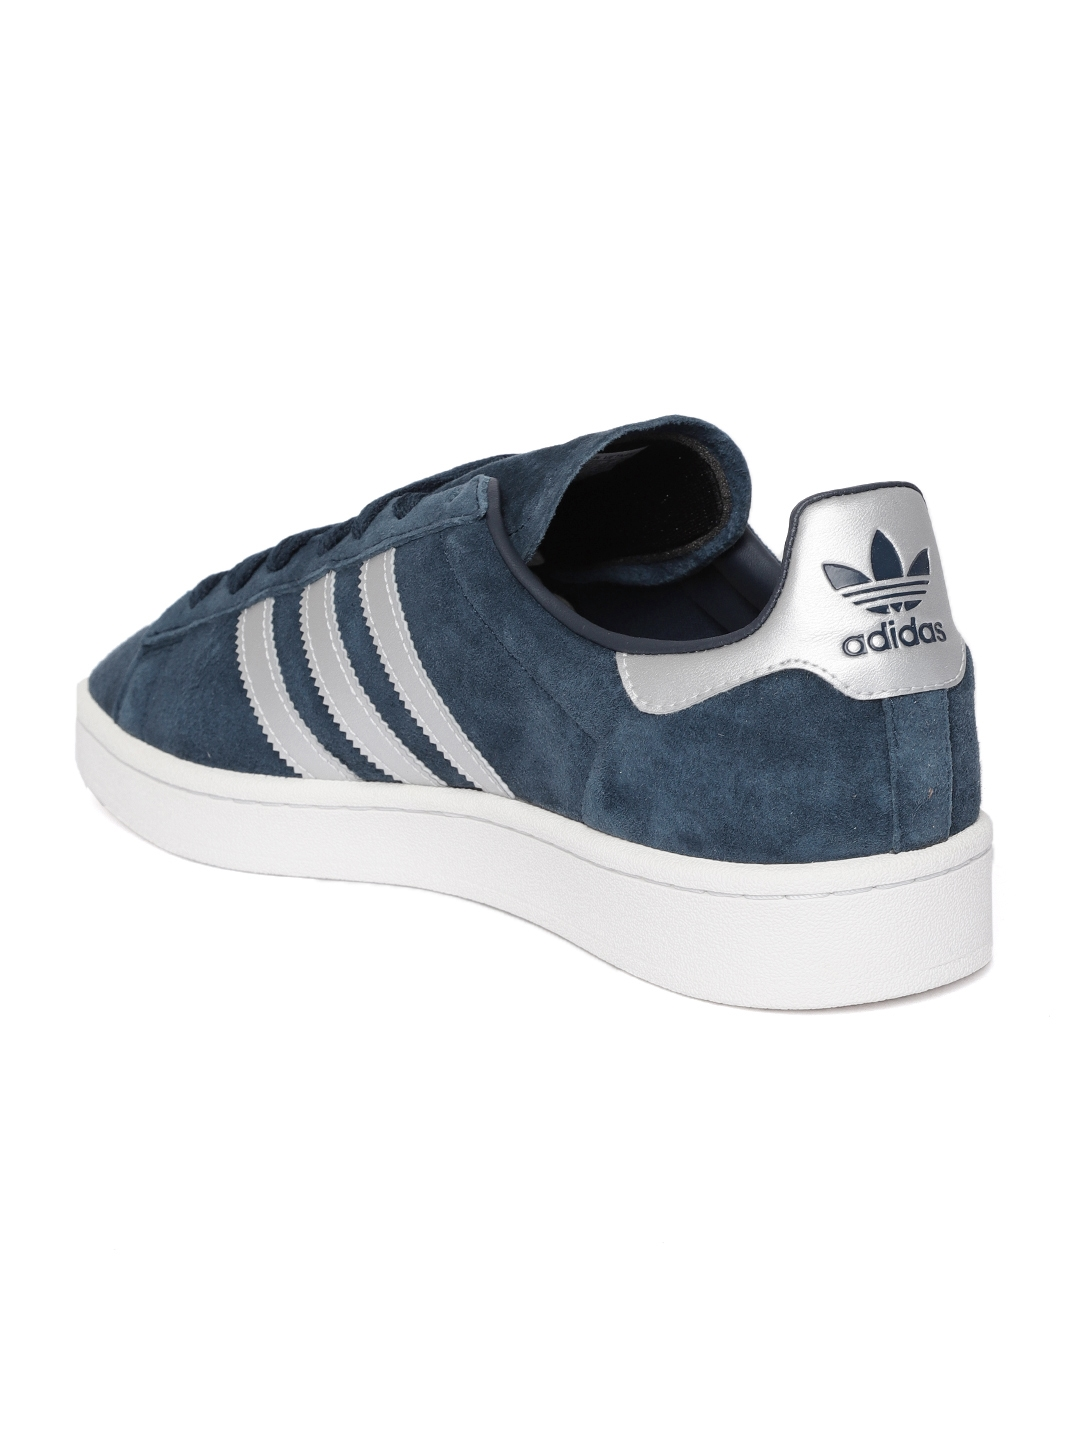 premium selection ad0c3 48565 Adidas Originals Men Navy Campus Nubuck Leather Sneakers